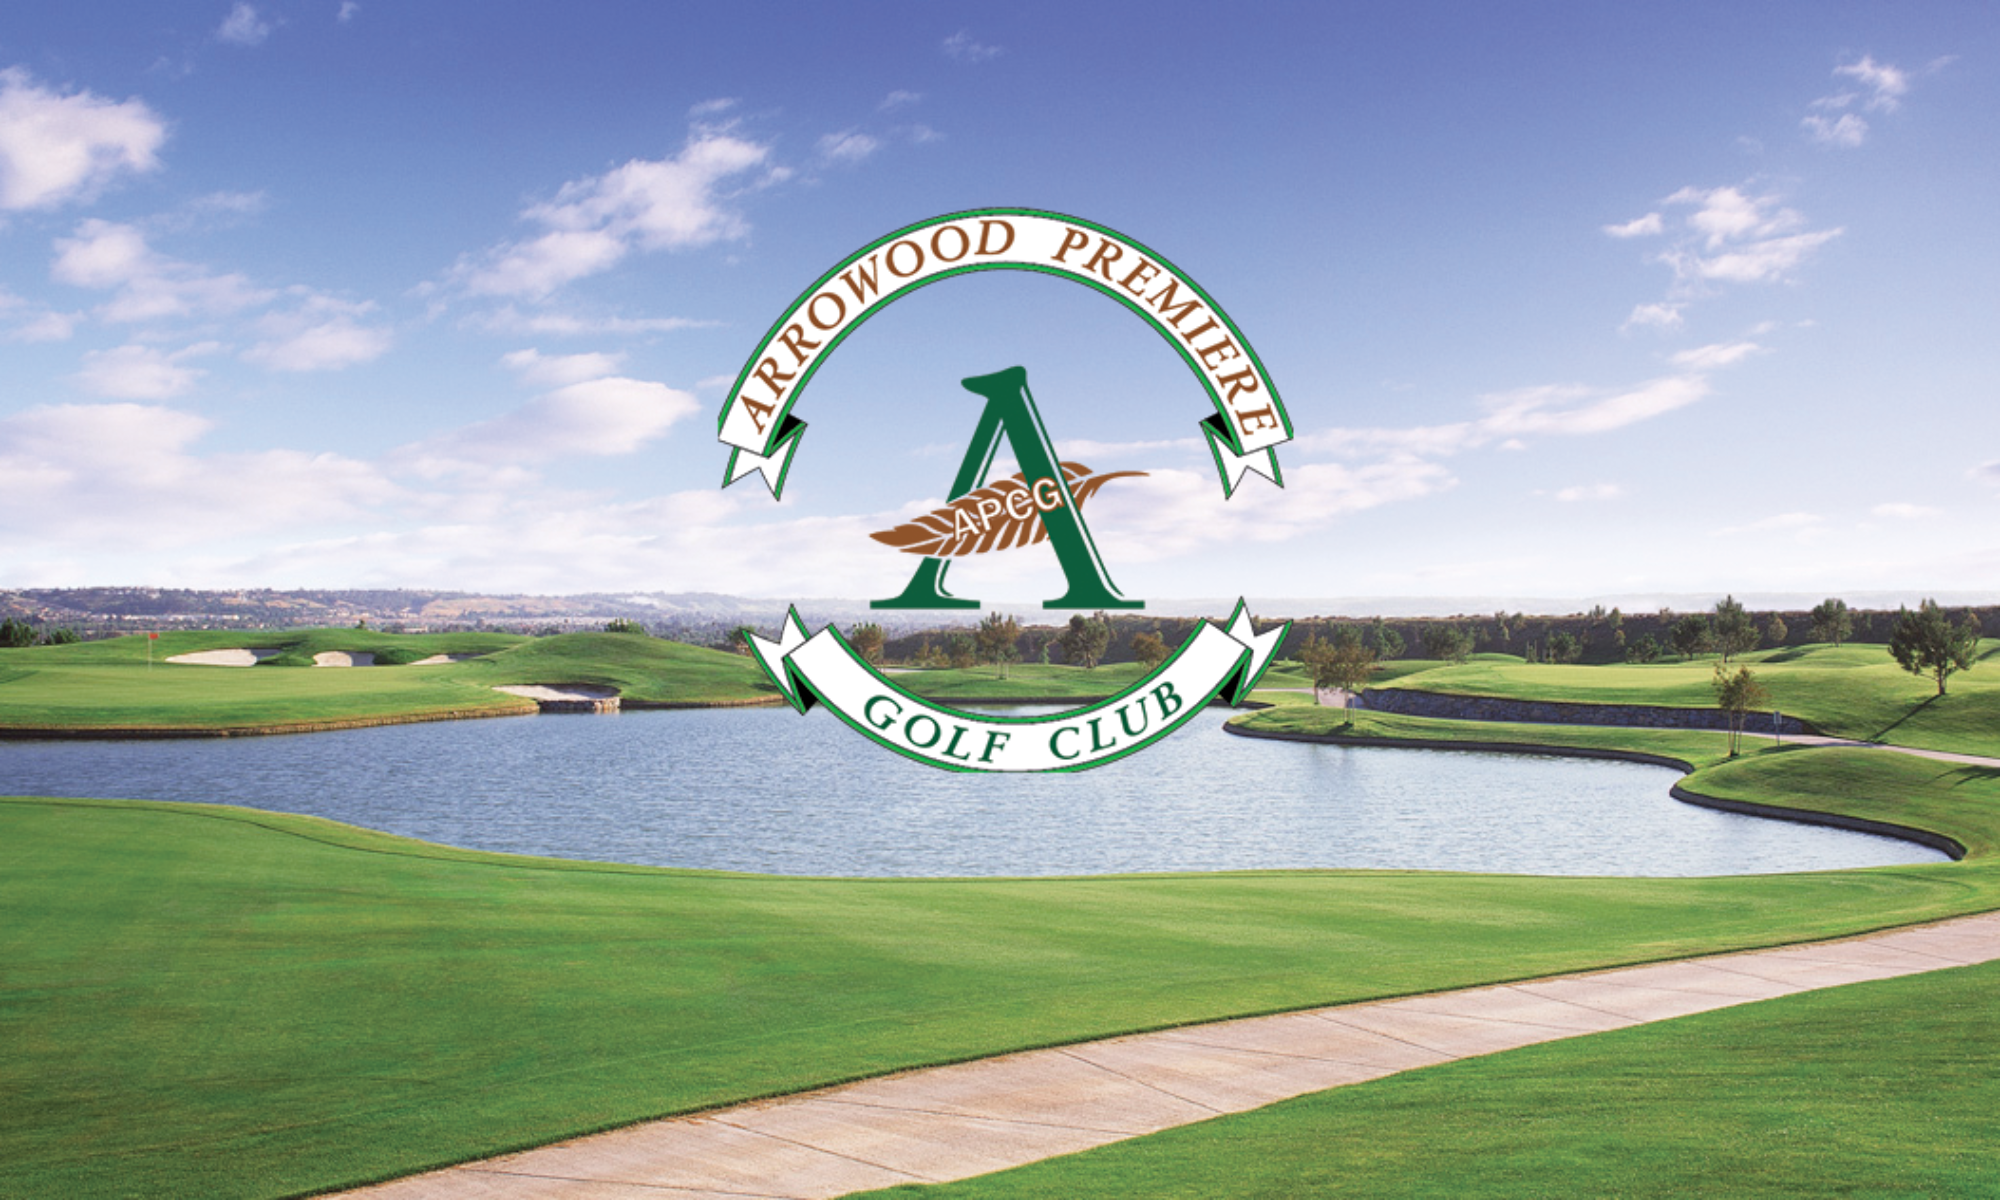 Arrowood Premiere Golf Club